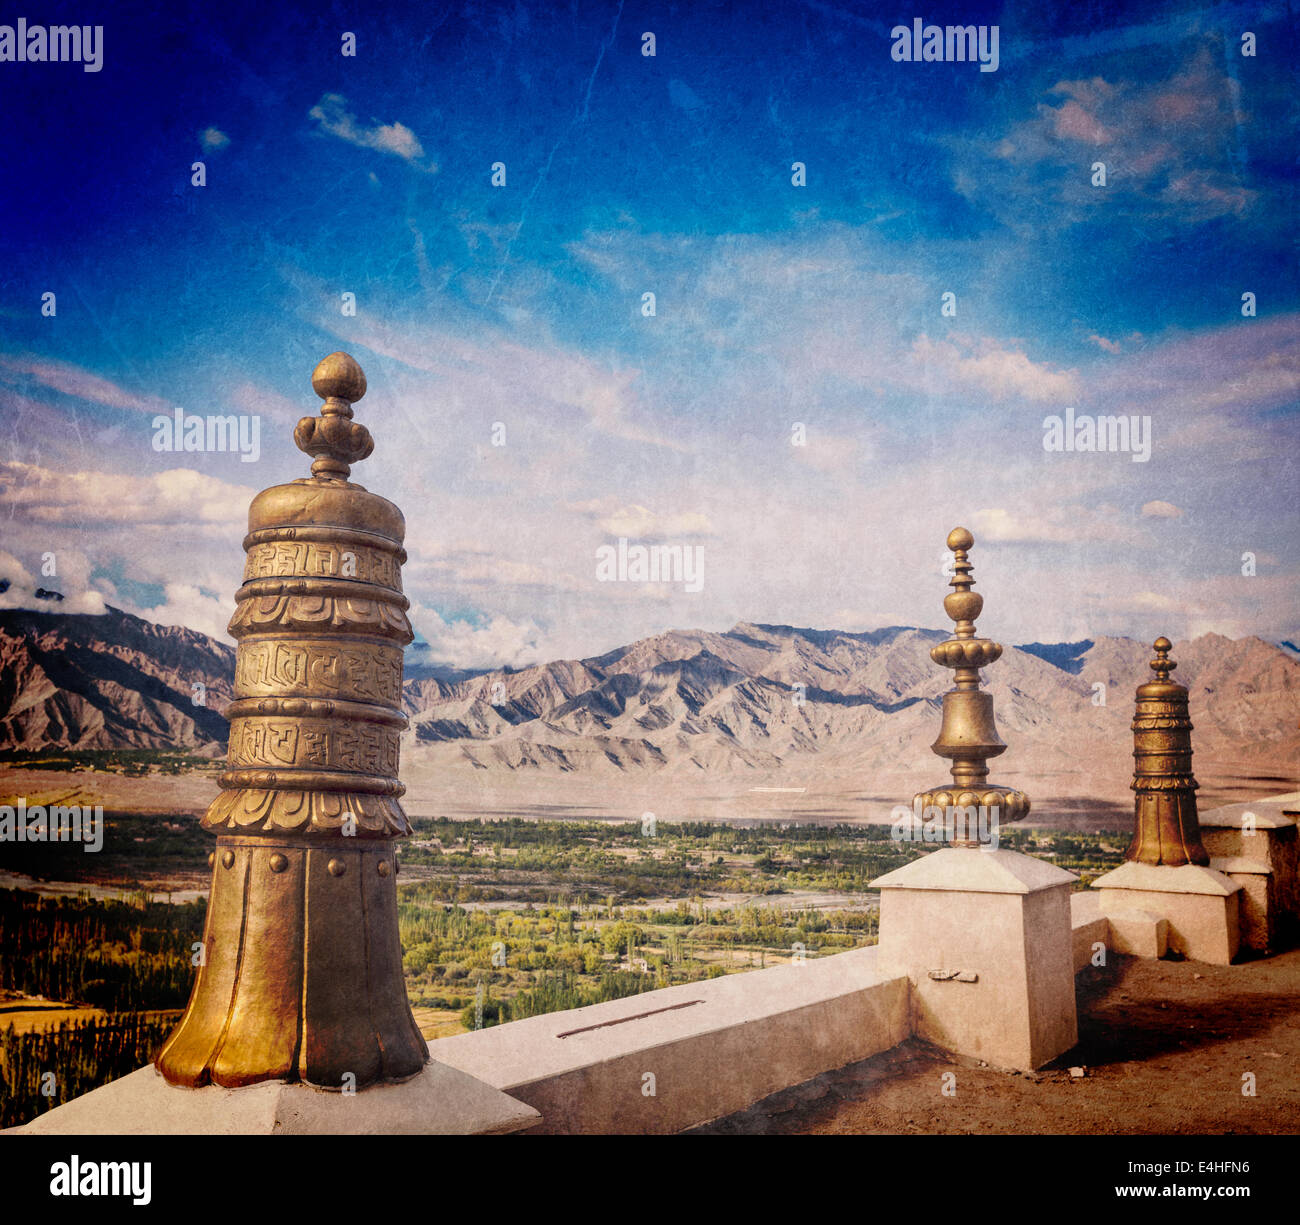 Vintage retro effect filtered hipster style travel image of Dhvaja (victory banners), on the roof of Thiksey gompa - Stock Image